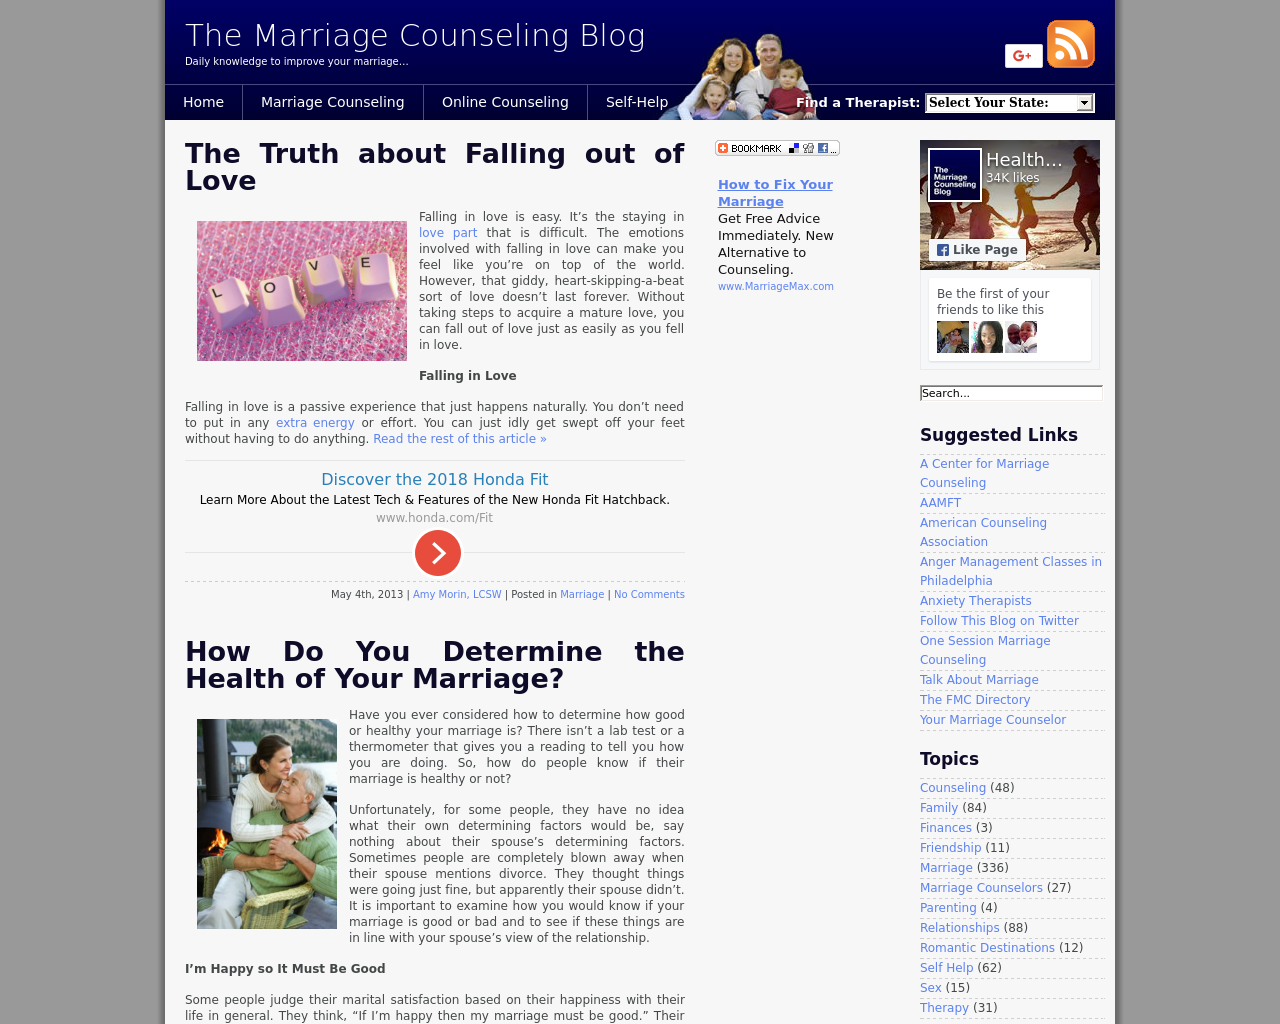 The-Marriage-Counseling-Blog-Advertising-Reviews-Pricing